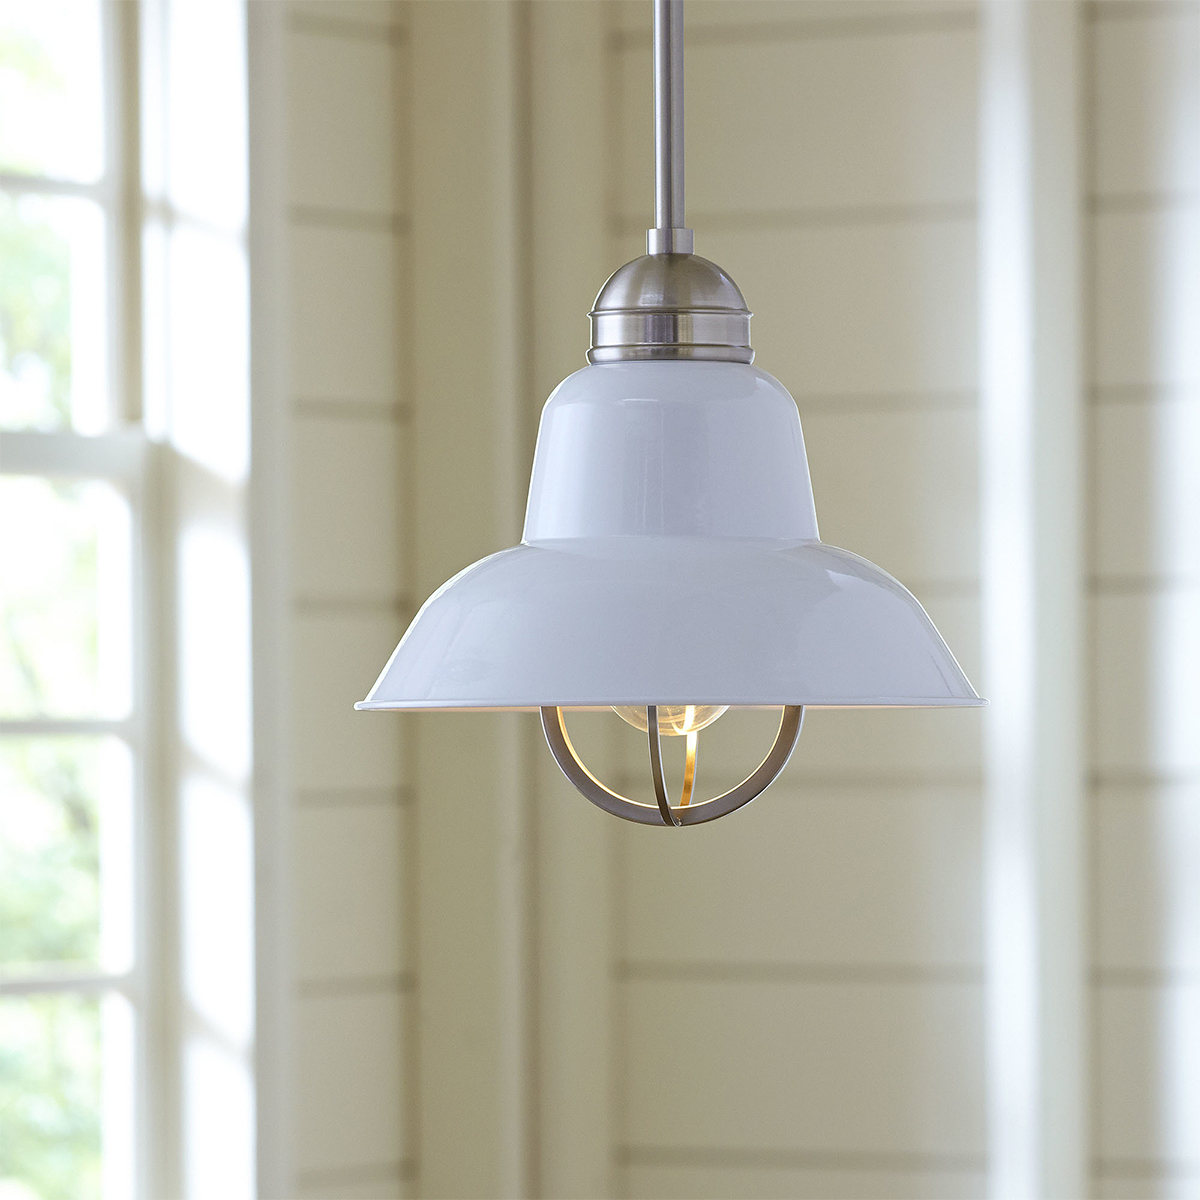 Industrial pendant lamp with white shade photo